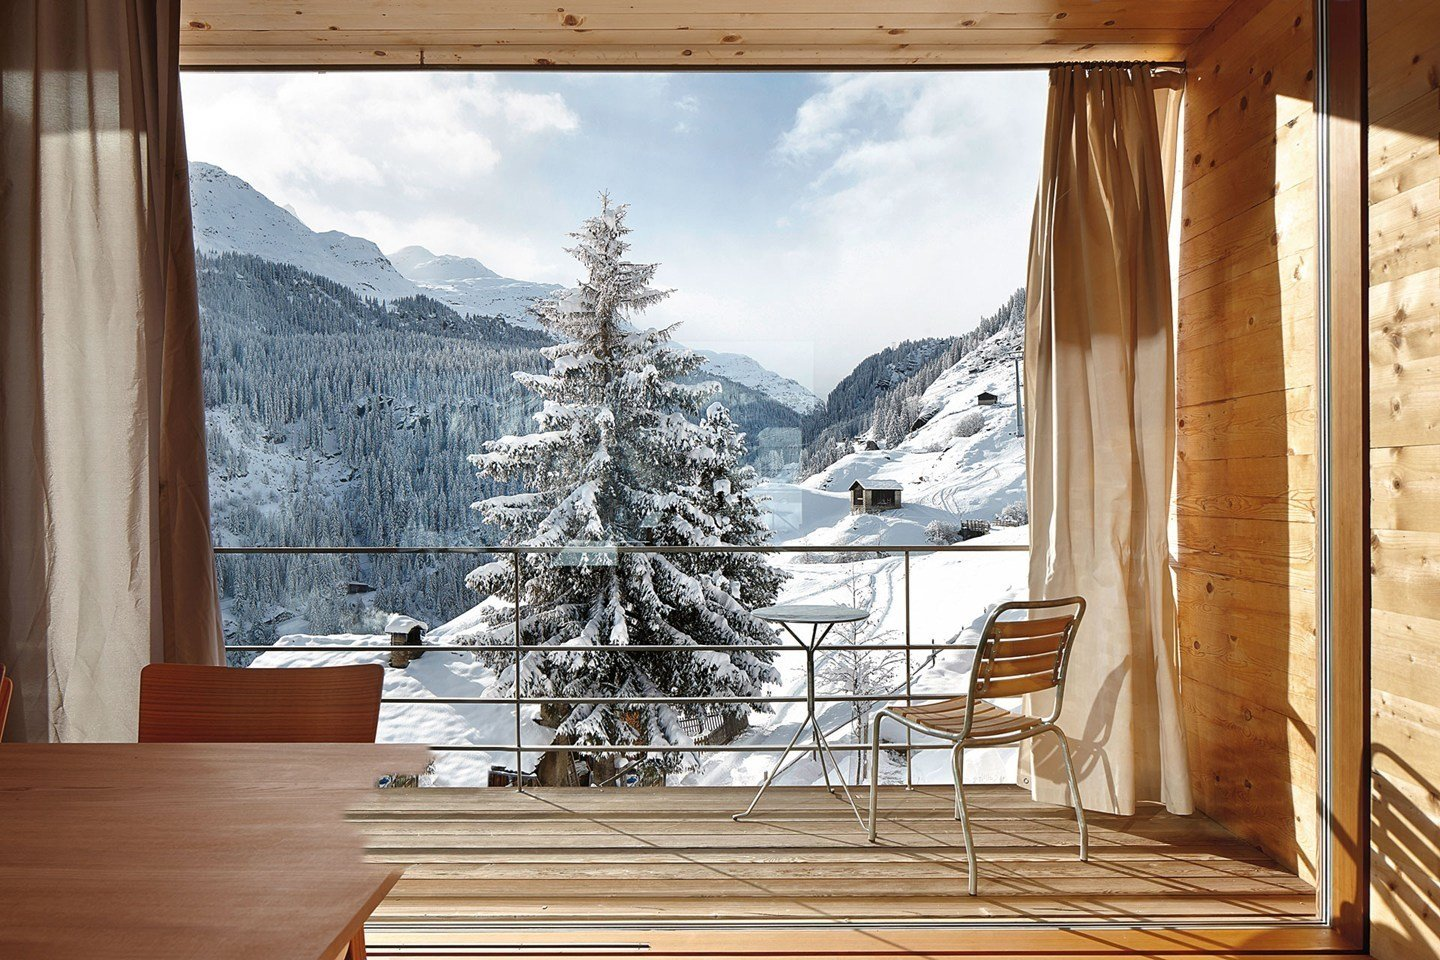 The Timber House by Peter Zumthor